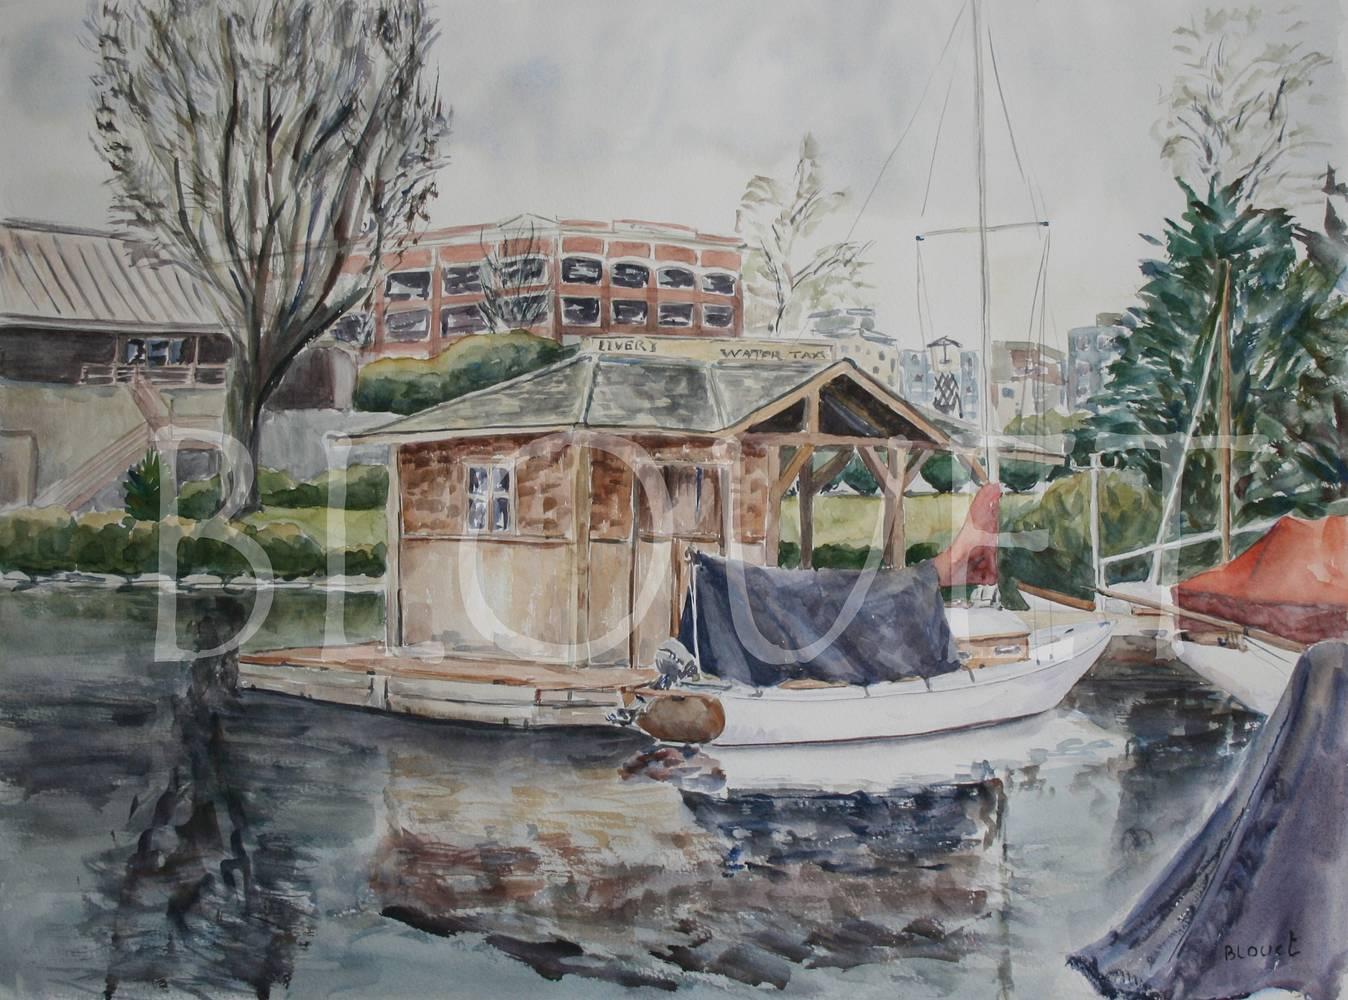 Watercolor Center for Wooden Boat: hivernage by Sophie Dassonville